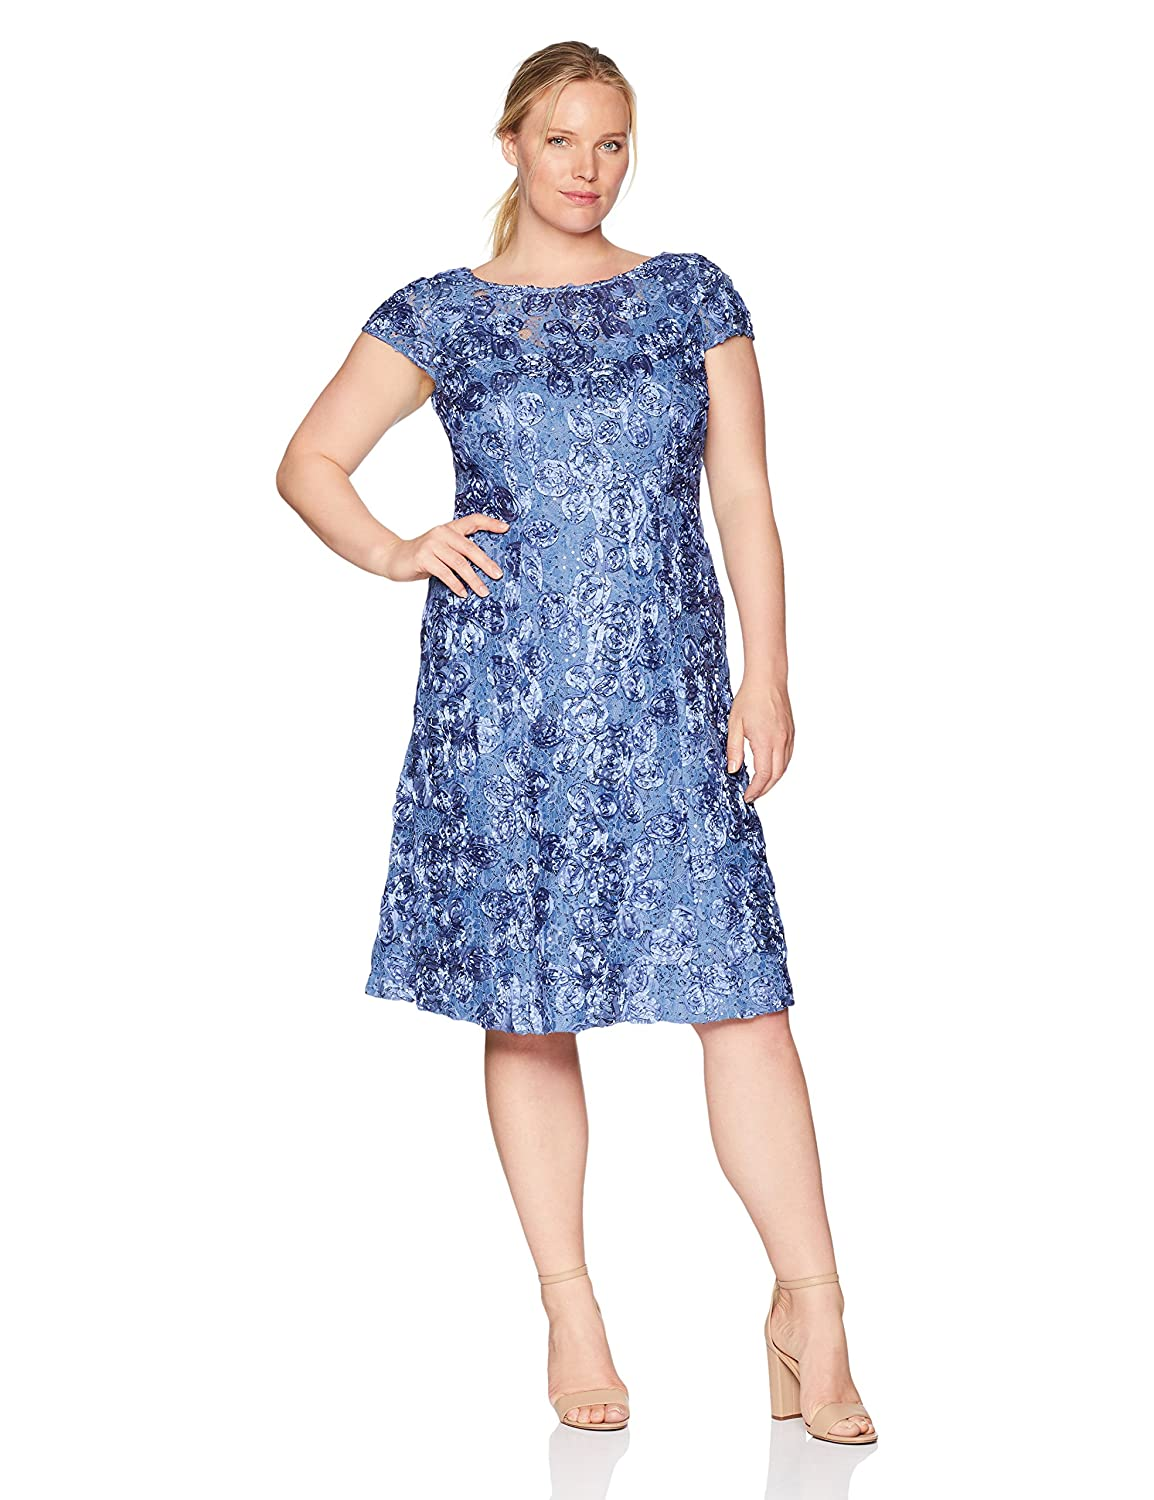 62e04da1f99 Top1  Alex Evenings Women s Plus Size Tea Length Rosette Dress with Sequin  Detail